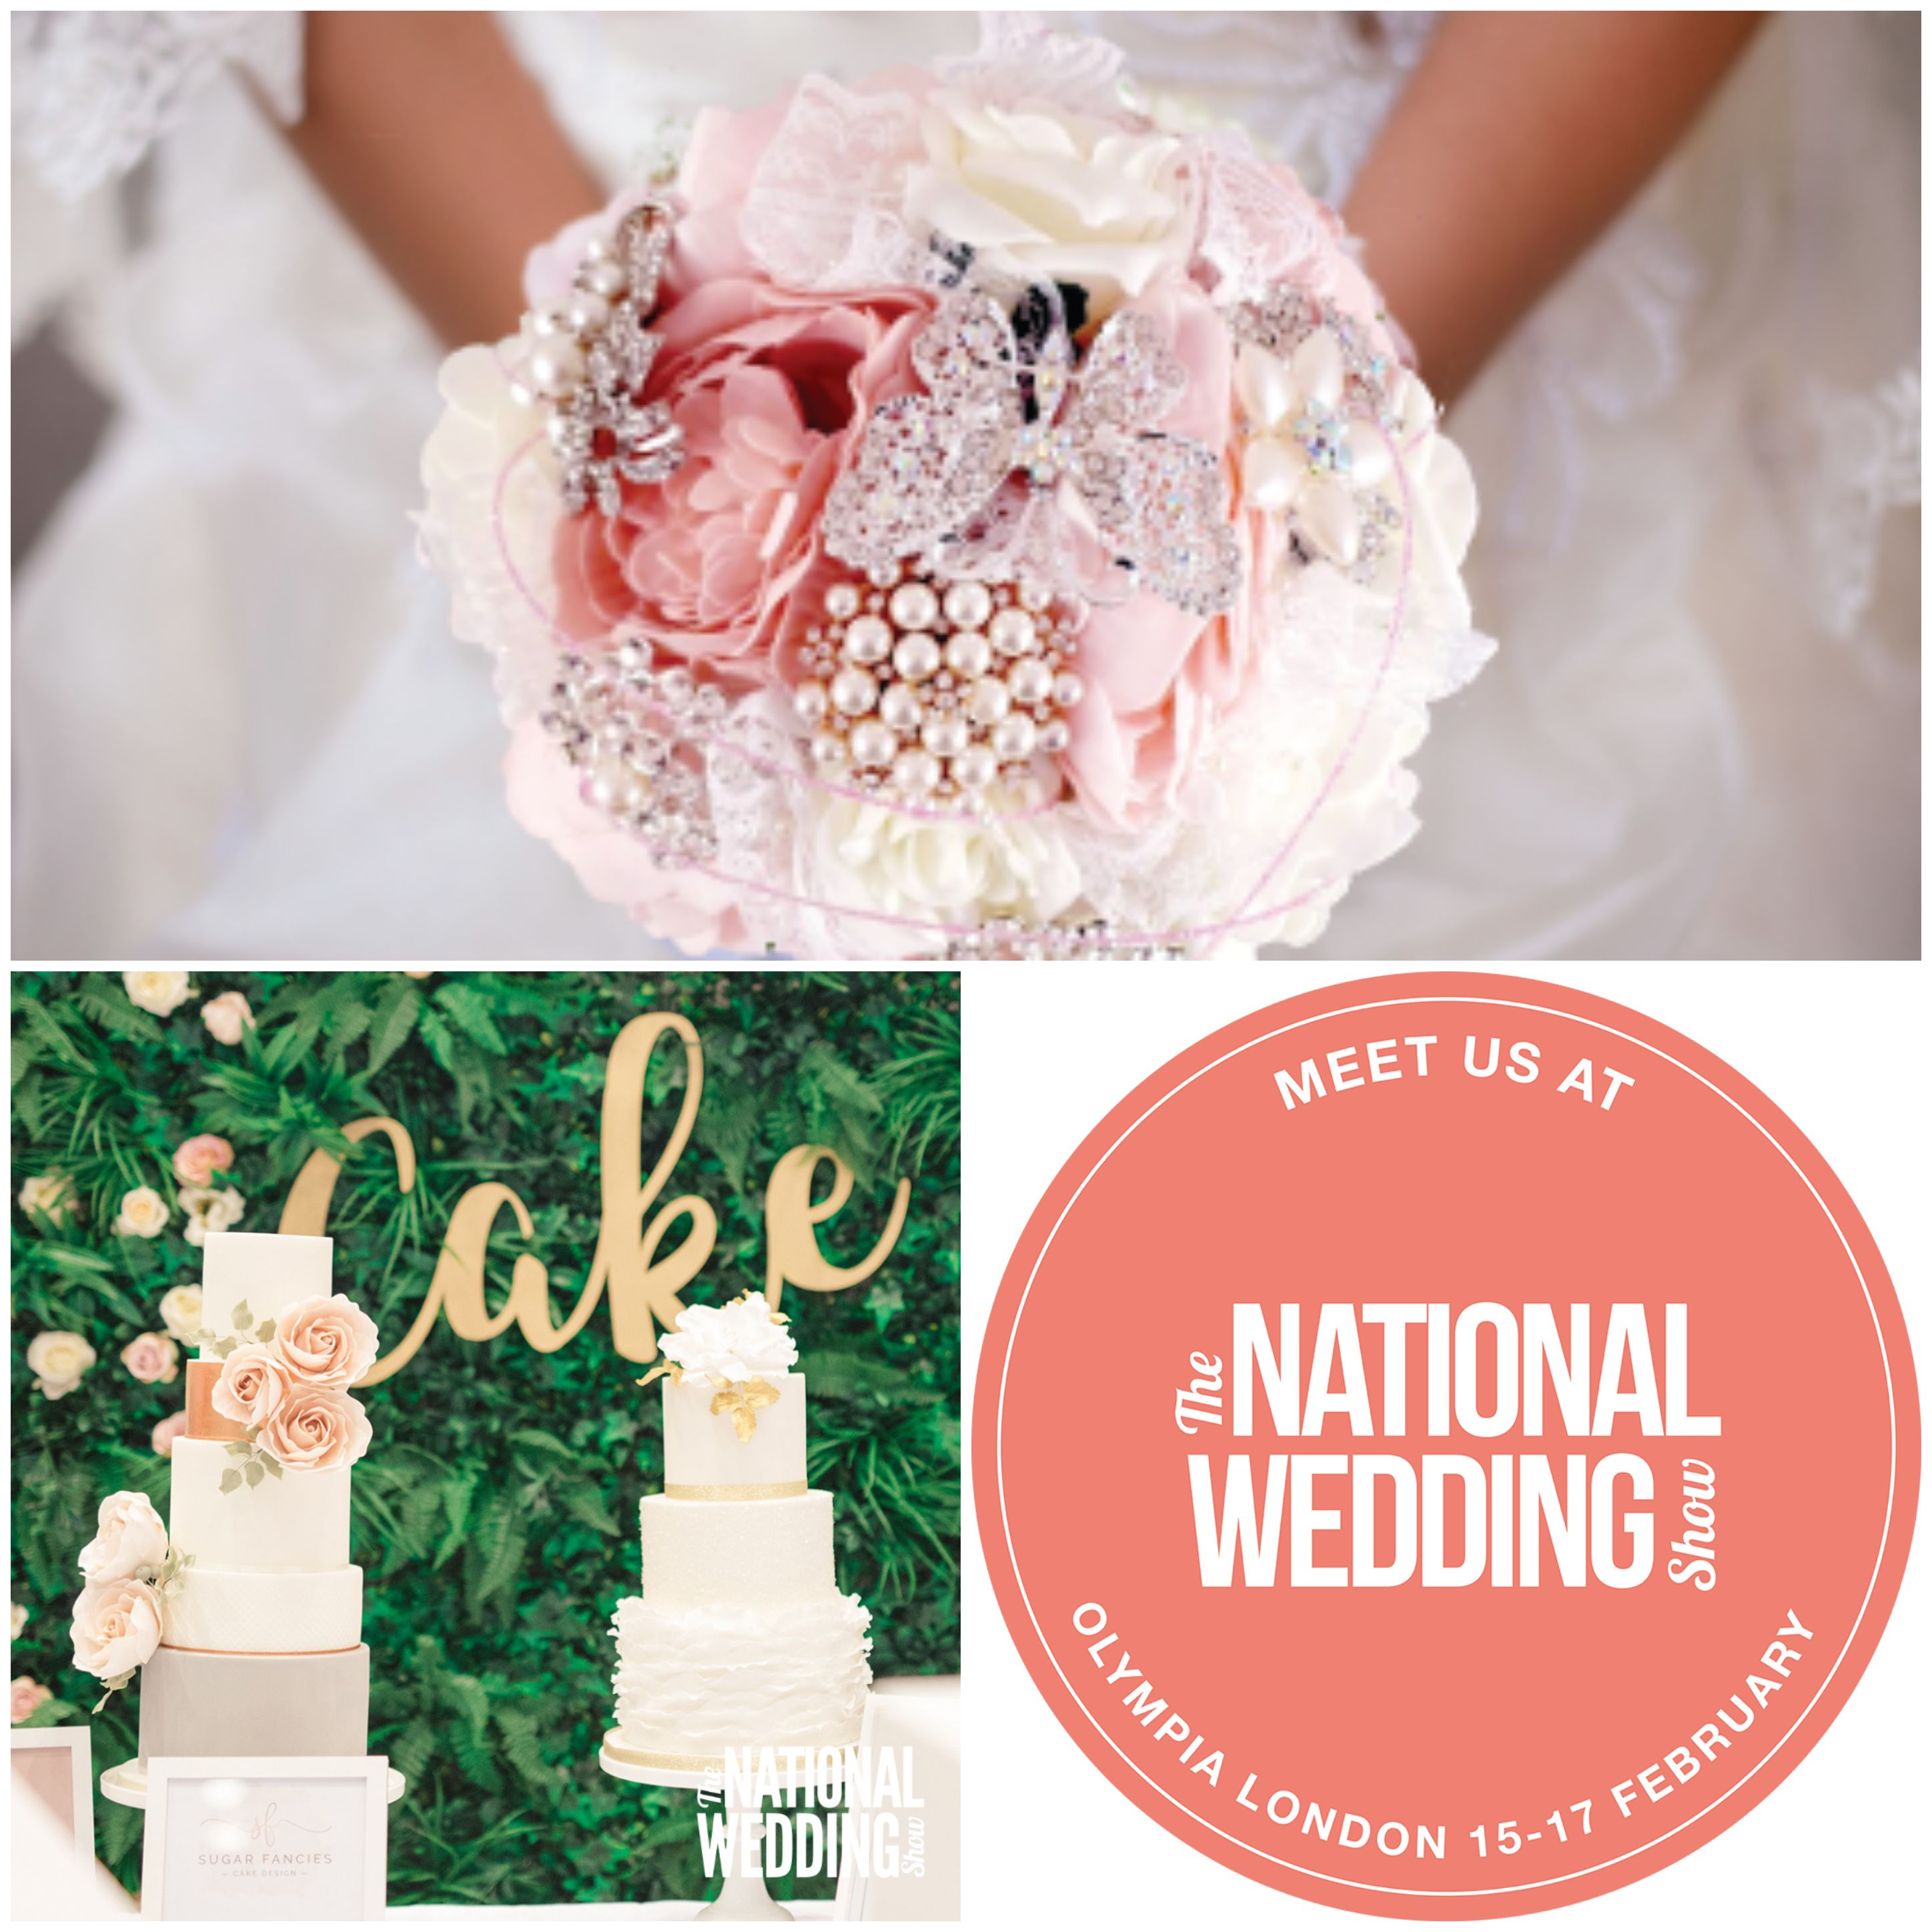 ToshCreations at the National Wedding Show